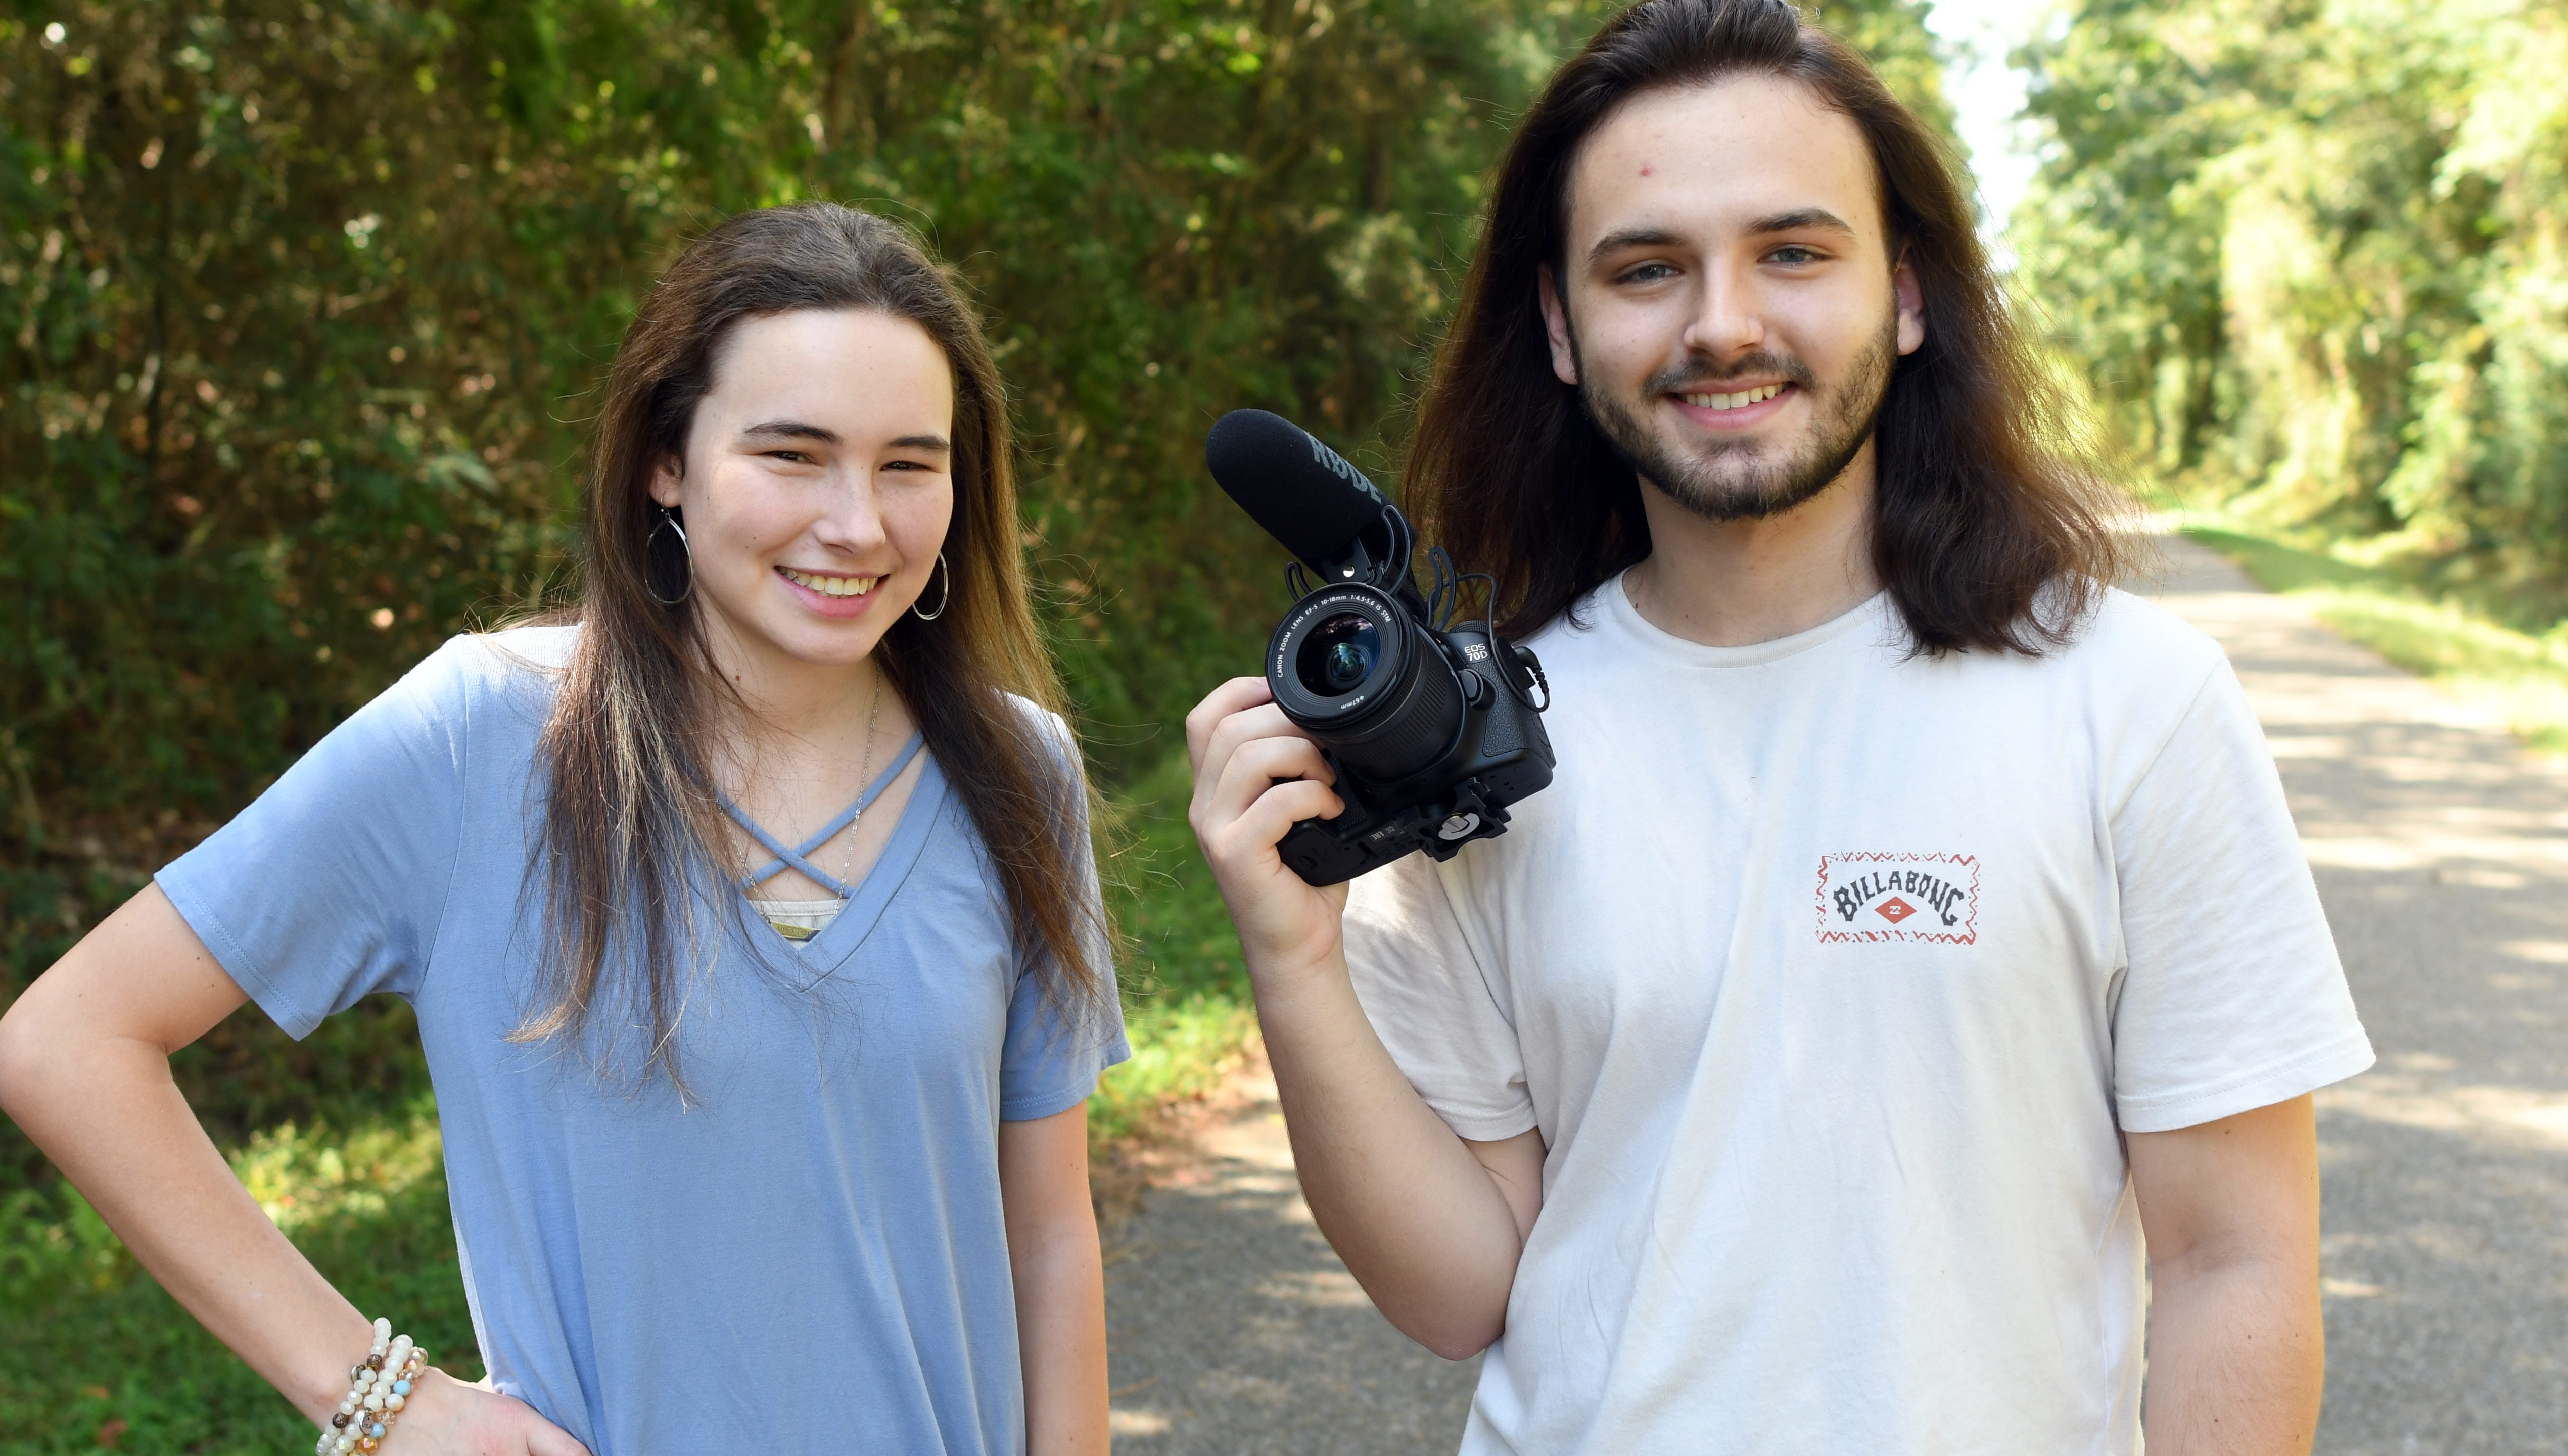 """On Sept. 14, Faith Counts announced that USM student filmmaker Kyle Churchwell won a $20,000 grand prize in the third annual """"Film Your Faith"""" contest. The film spotlights the life of 21-year-old Tori Welford whose mother abandoned her at birth."""